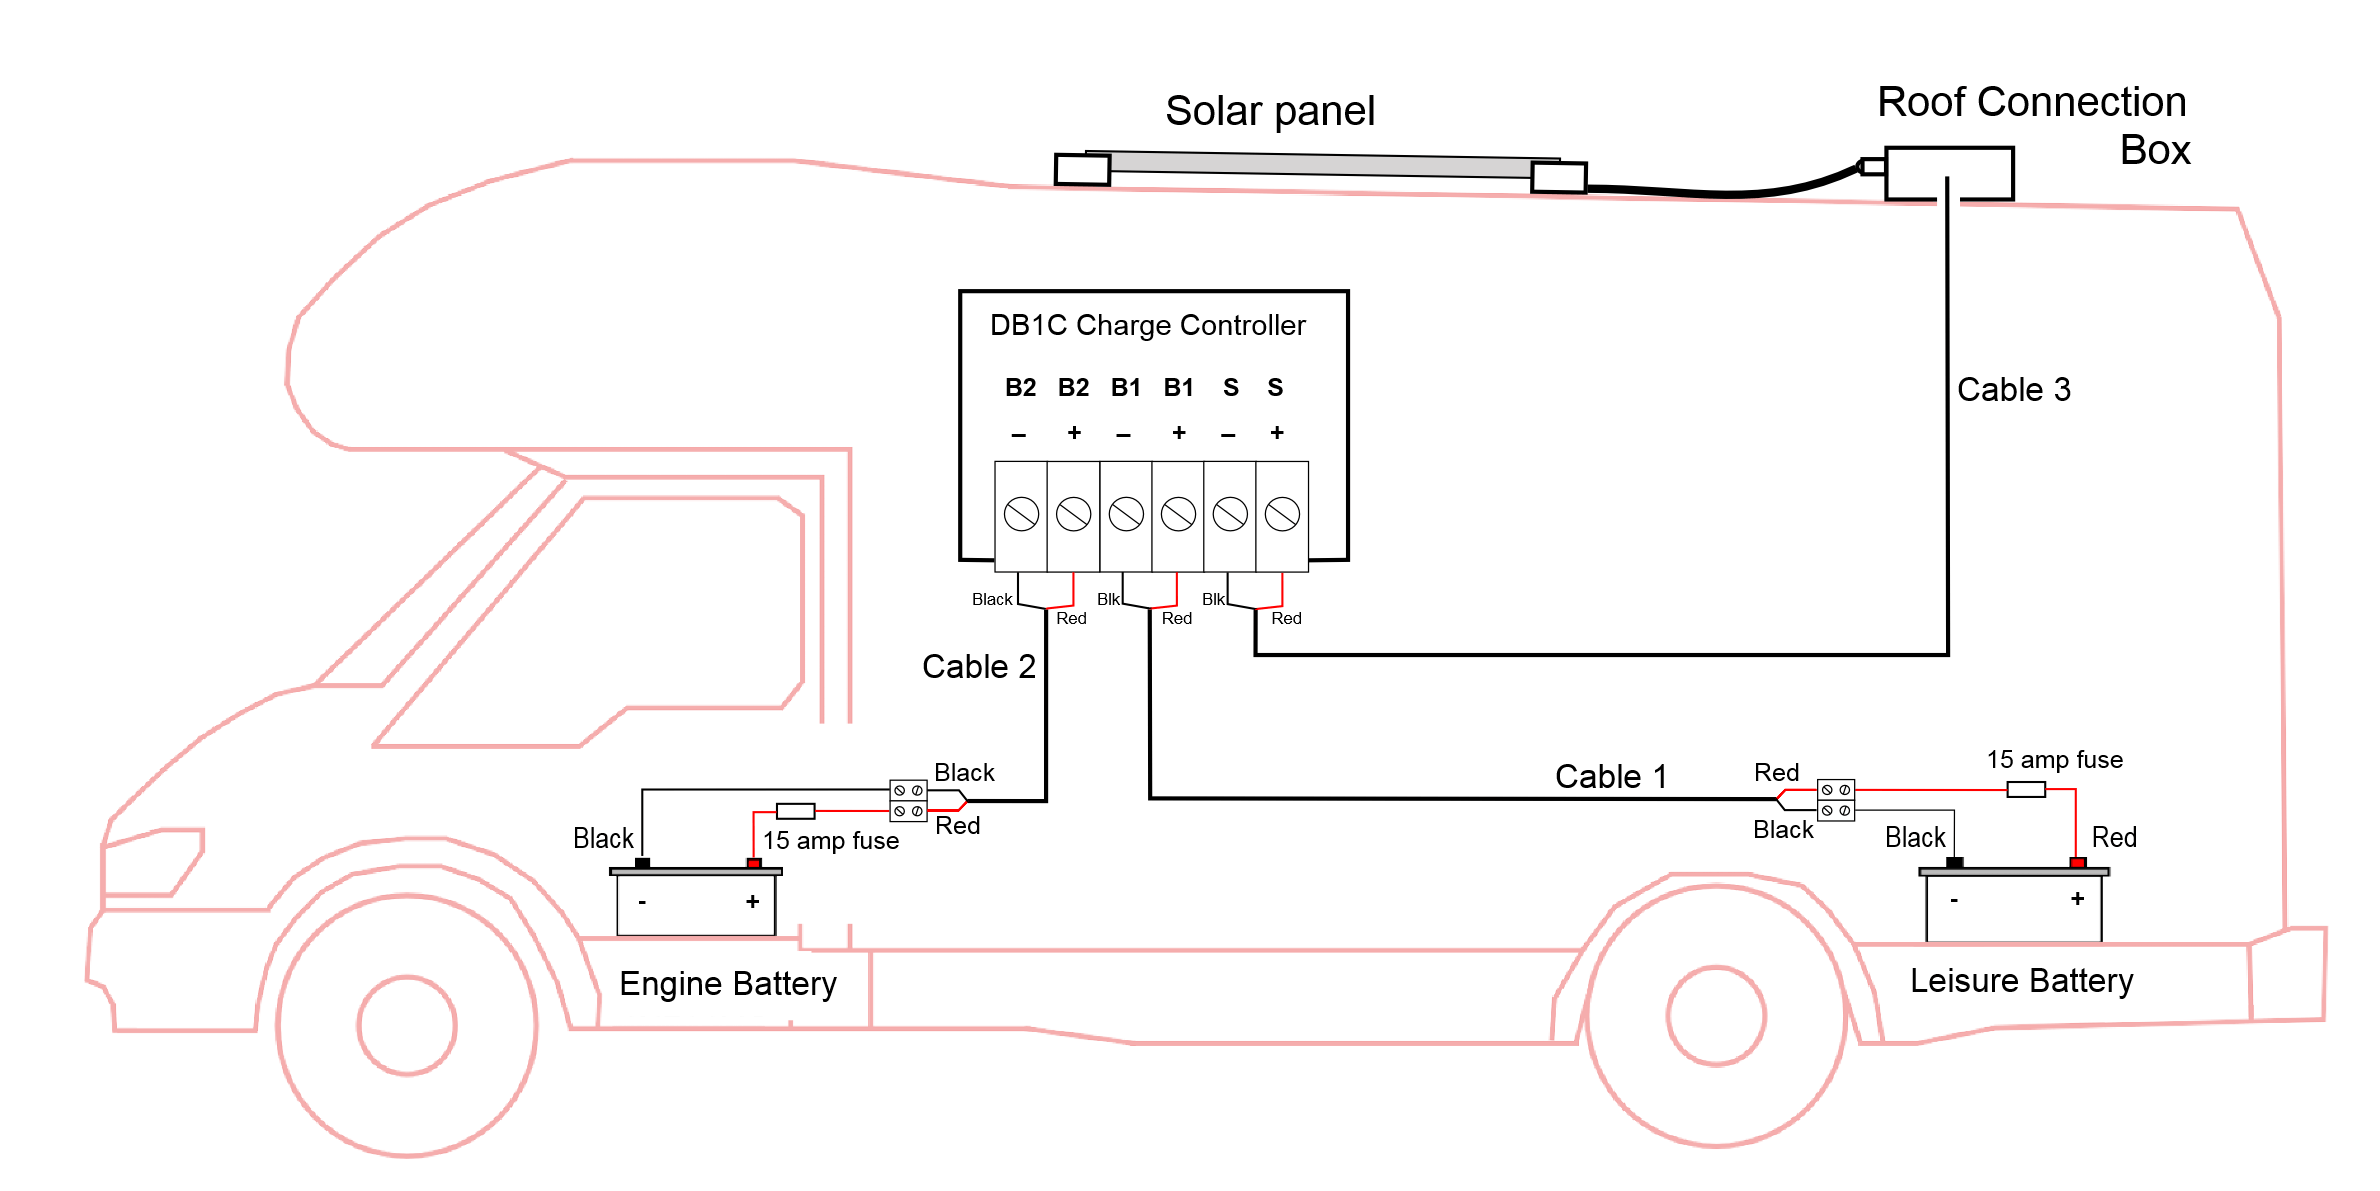 sca dual battery kit wiring diagram mobile home ligurien solar charge controller by sunworks db1c 11